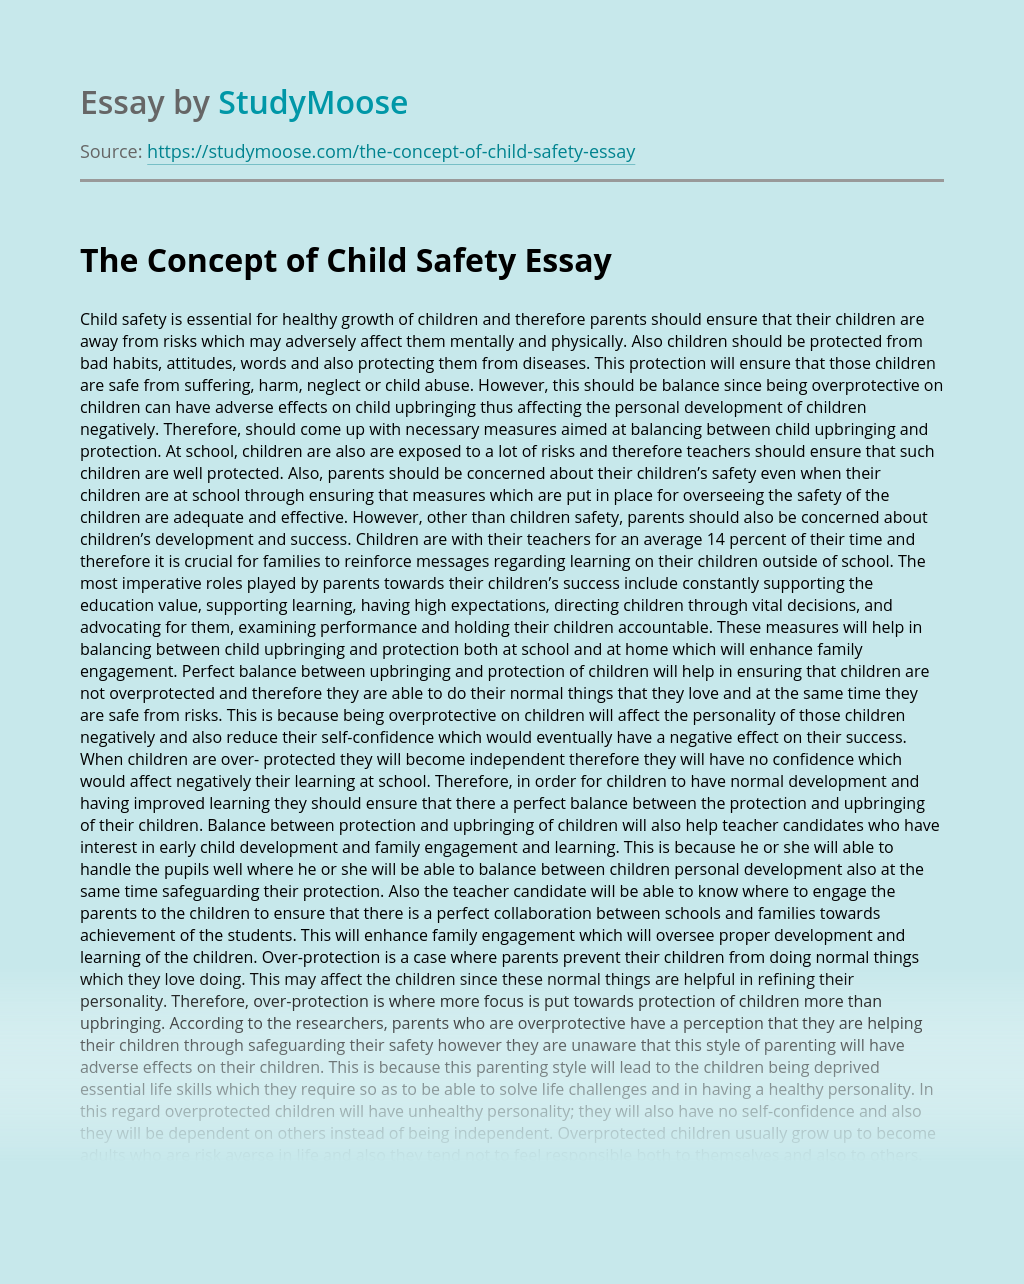 The Concept of Child Safety